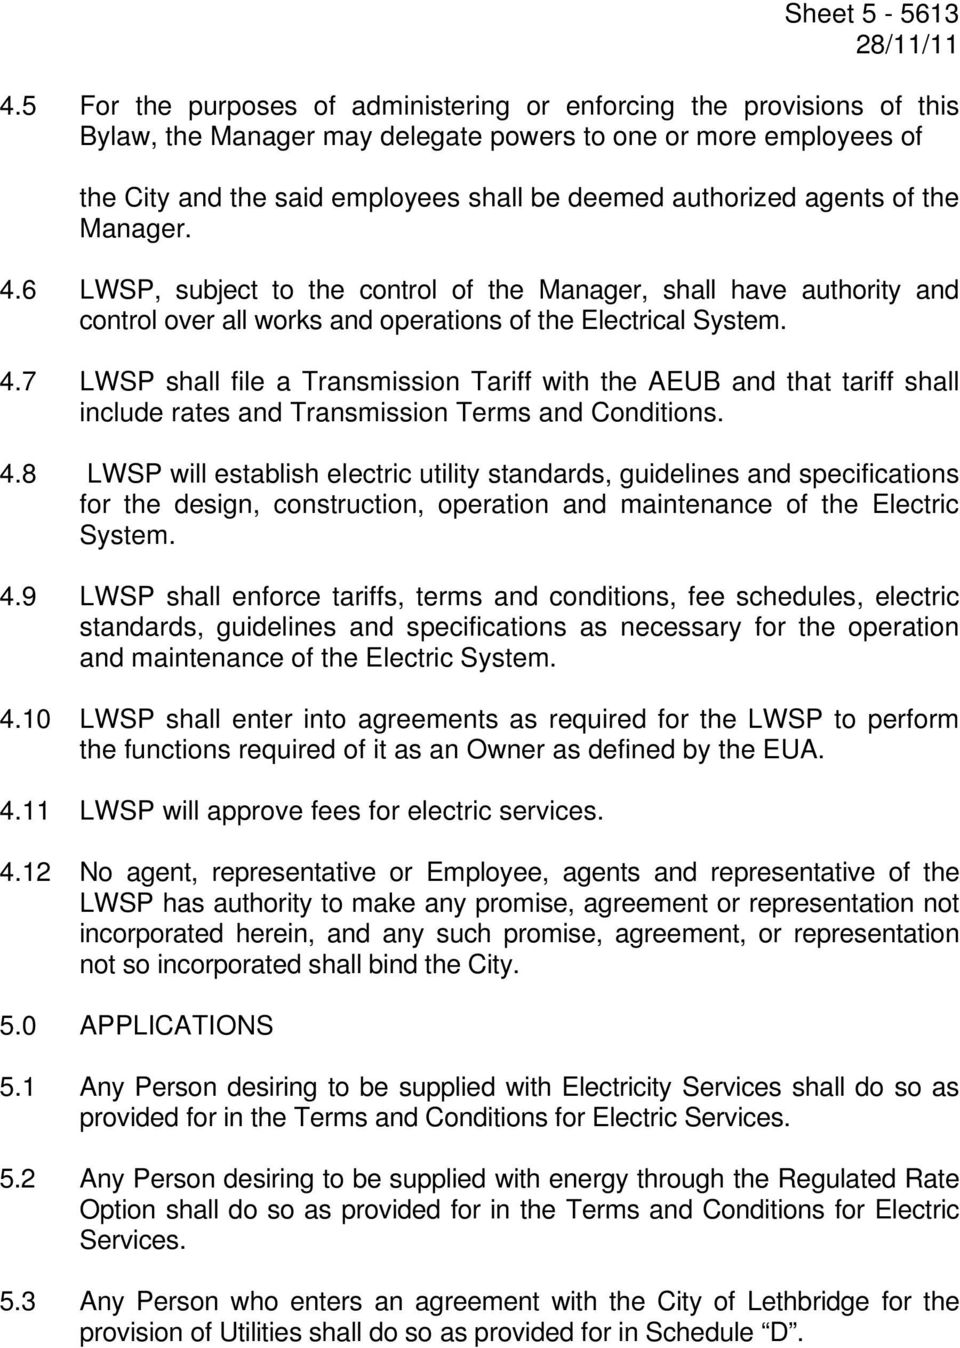 agents of the Manager. 4.6 LWSP, subject to the control of the Manager, shall have authority and control over all works and operations of the Electrical System. 4.7 LWSP shall file a Transmission Tariff with the AEUB and that tariff shall include rates and Transmission Terms and Conditions.